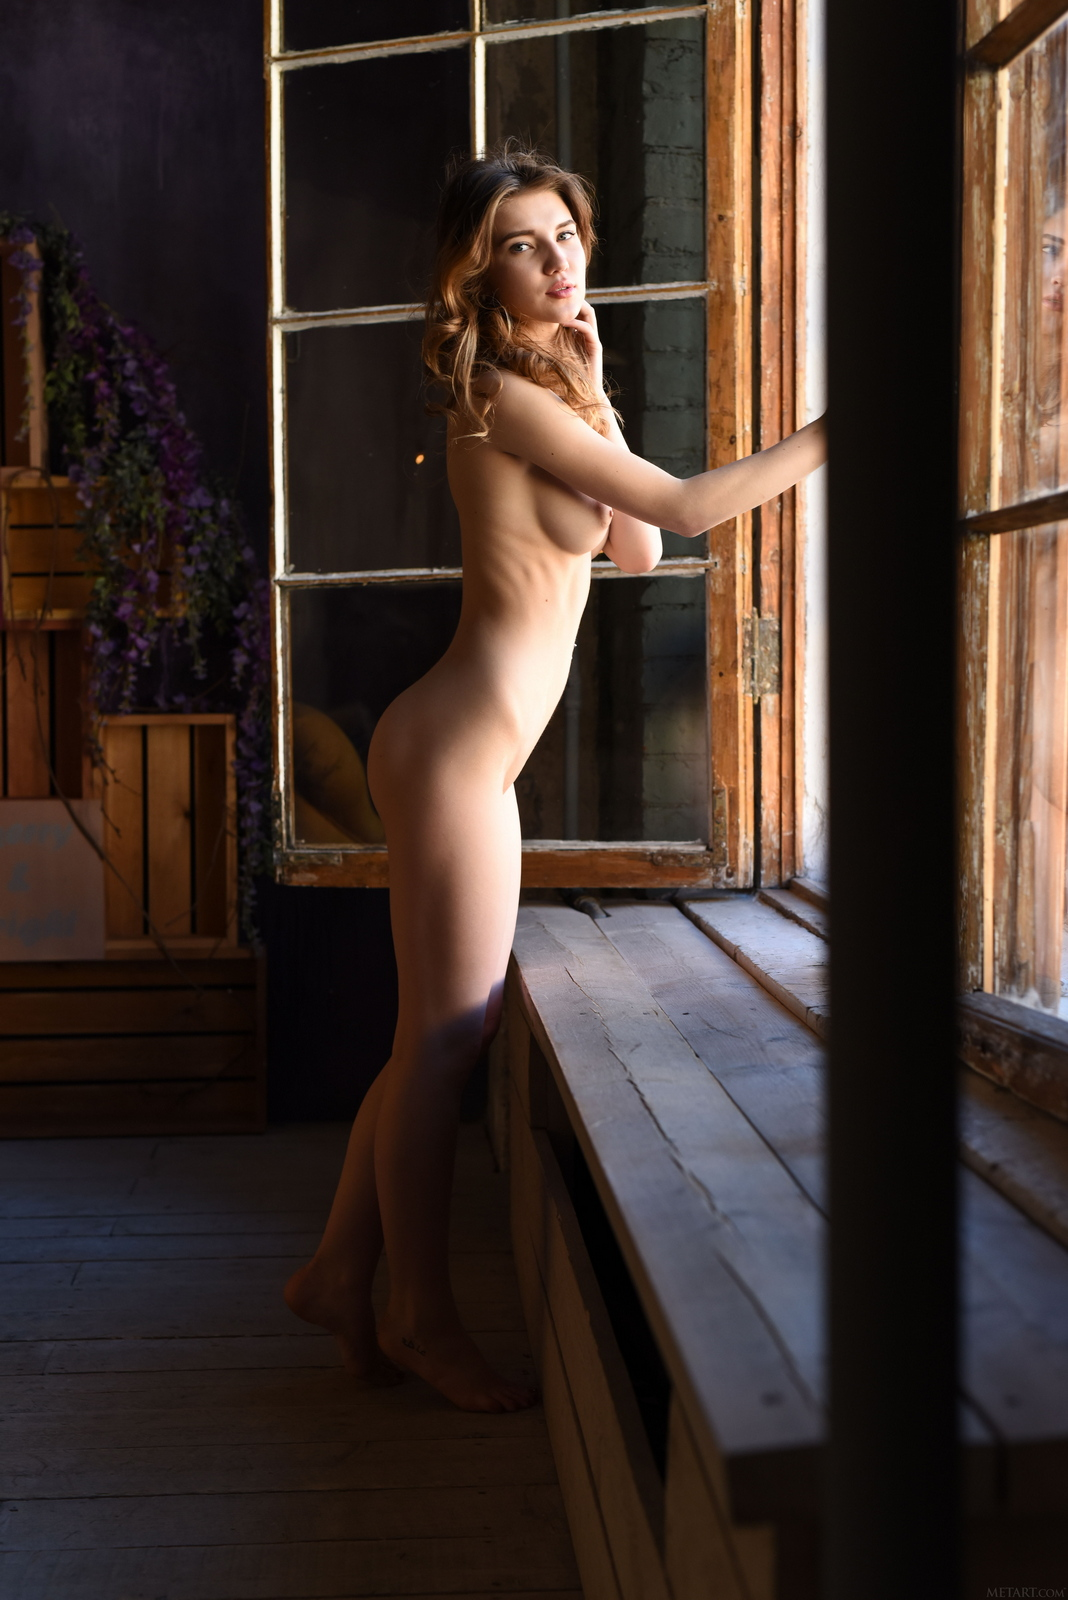 caramel-yellow-armchair-young-nude-pussy-met-art-36